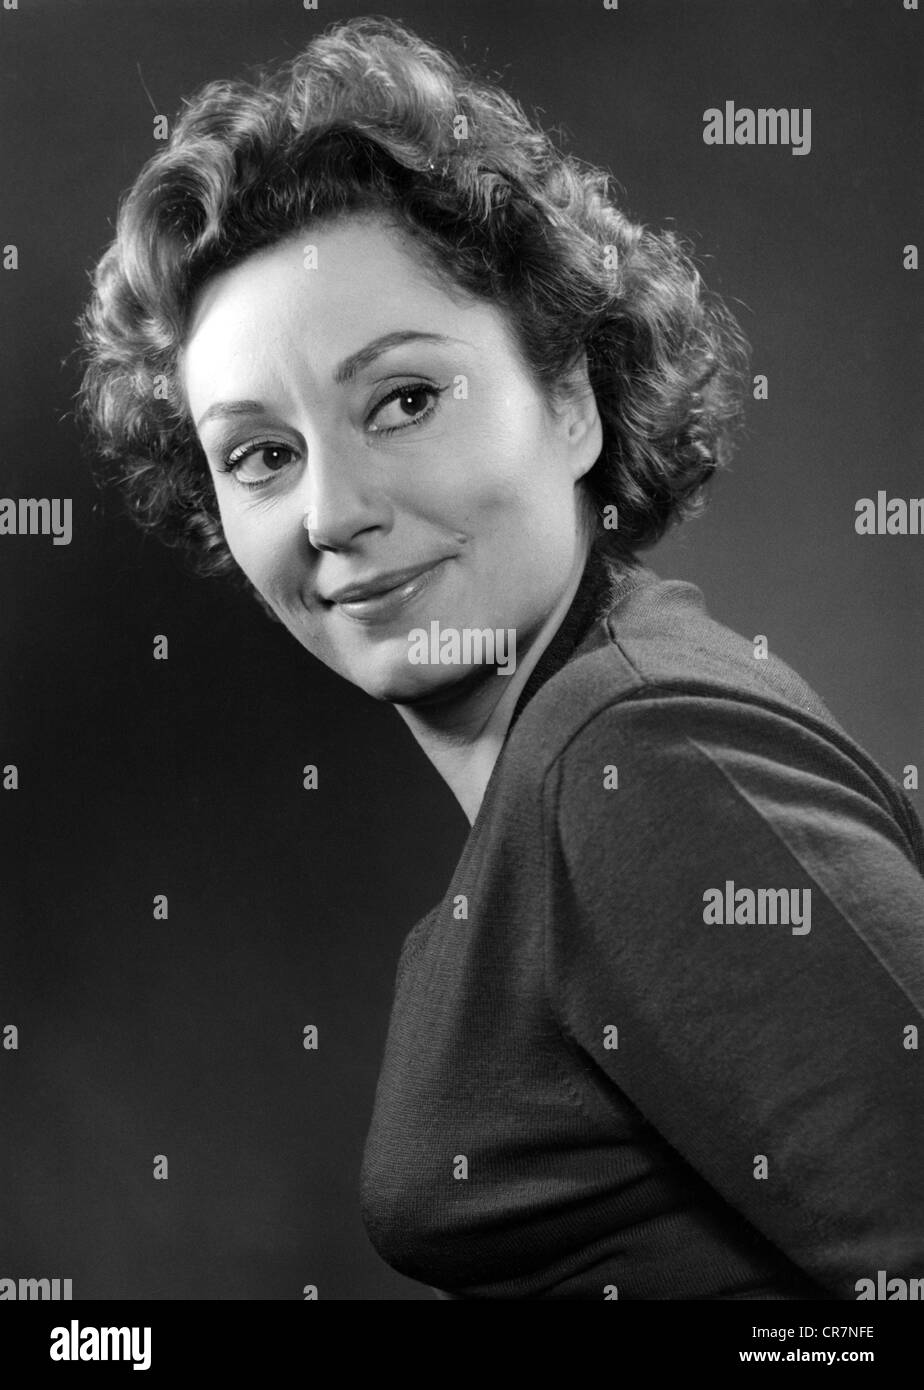 Müthel, Lola, 9.3.1919 - 11.12.2011, German actress, portrait, 1950s, Additional-Rights-Clearances-NA - Stock Image